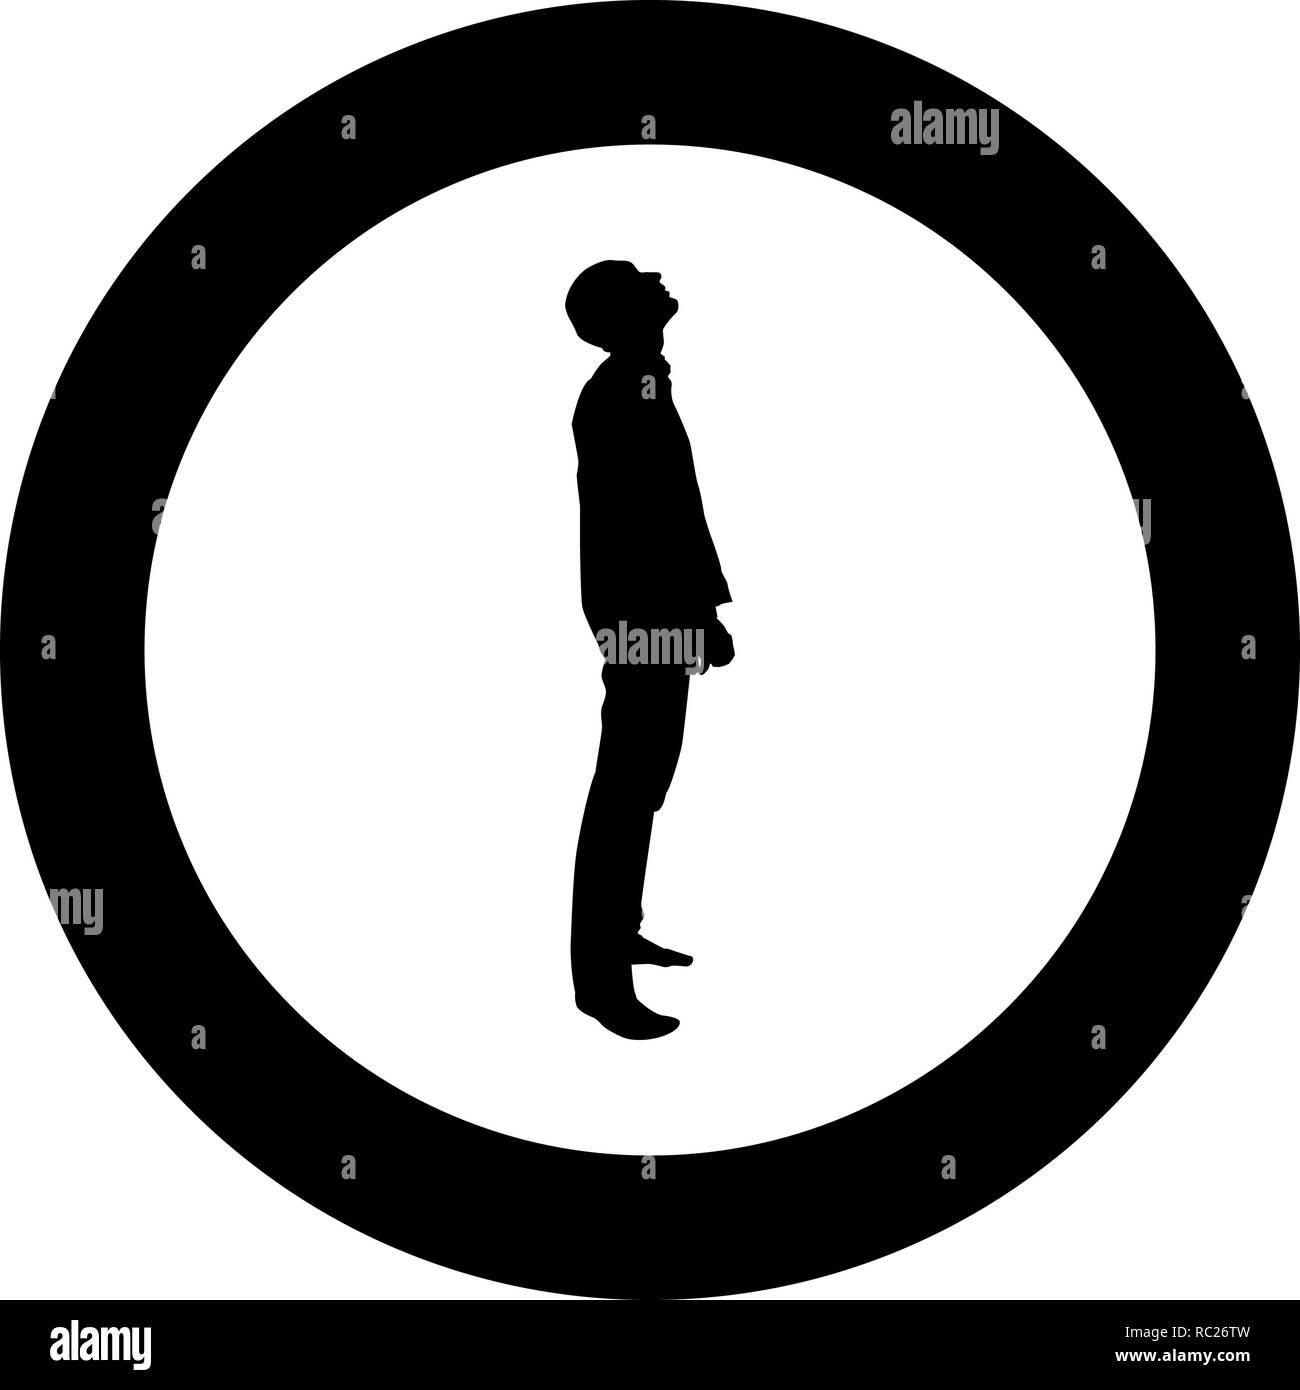 Man looks up silhouette icon black color vector I flat style simple imagein circle round - Stock Vector